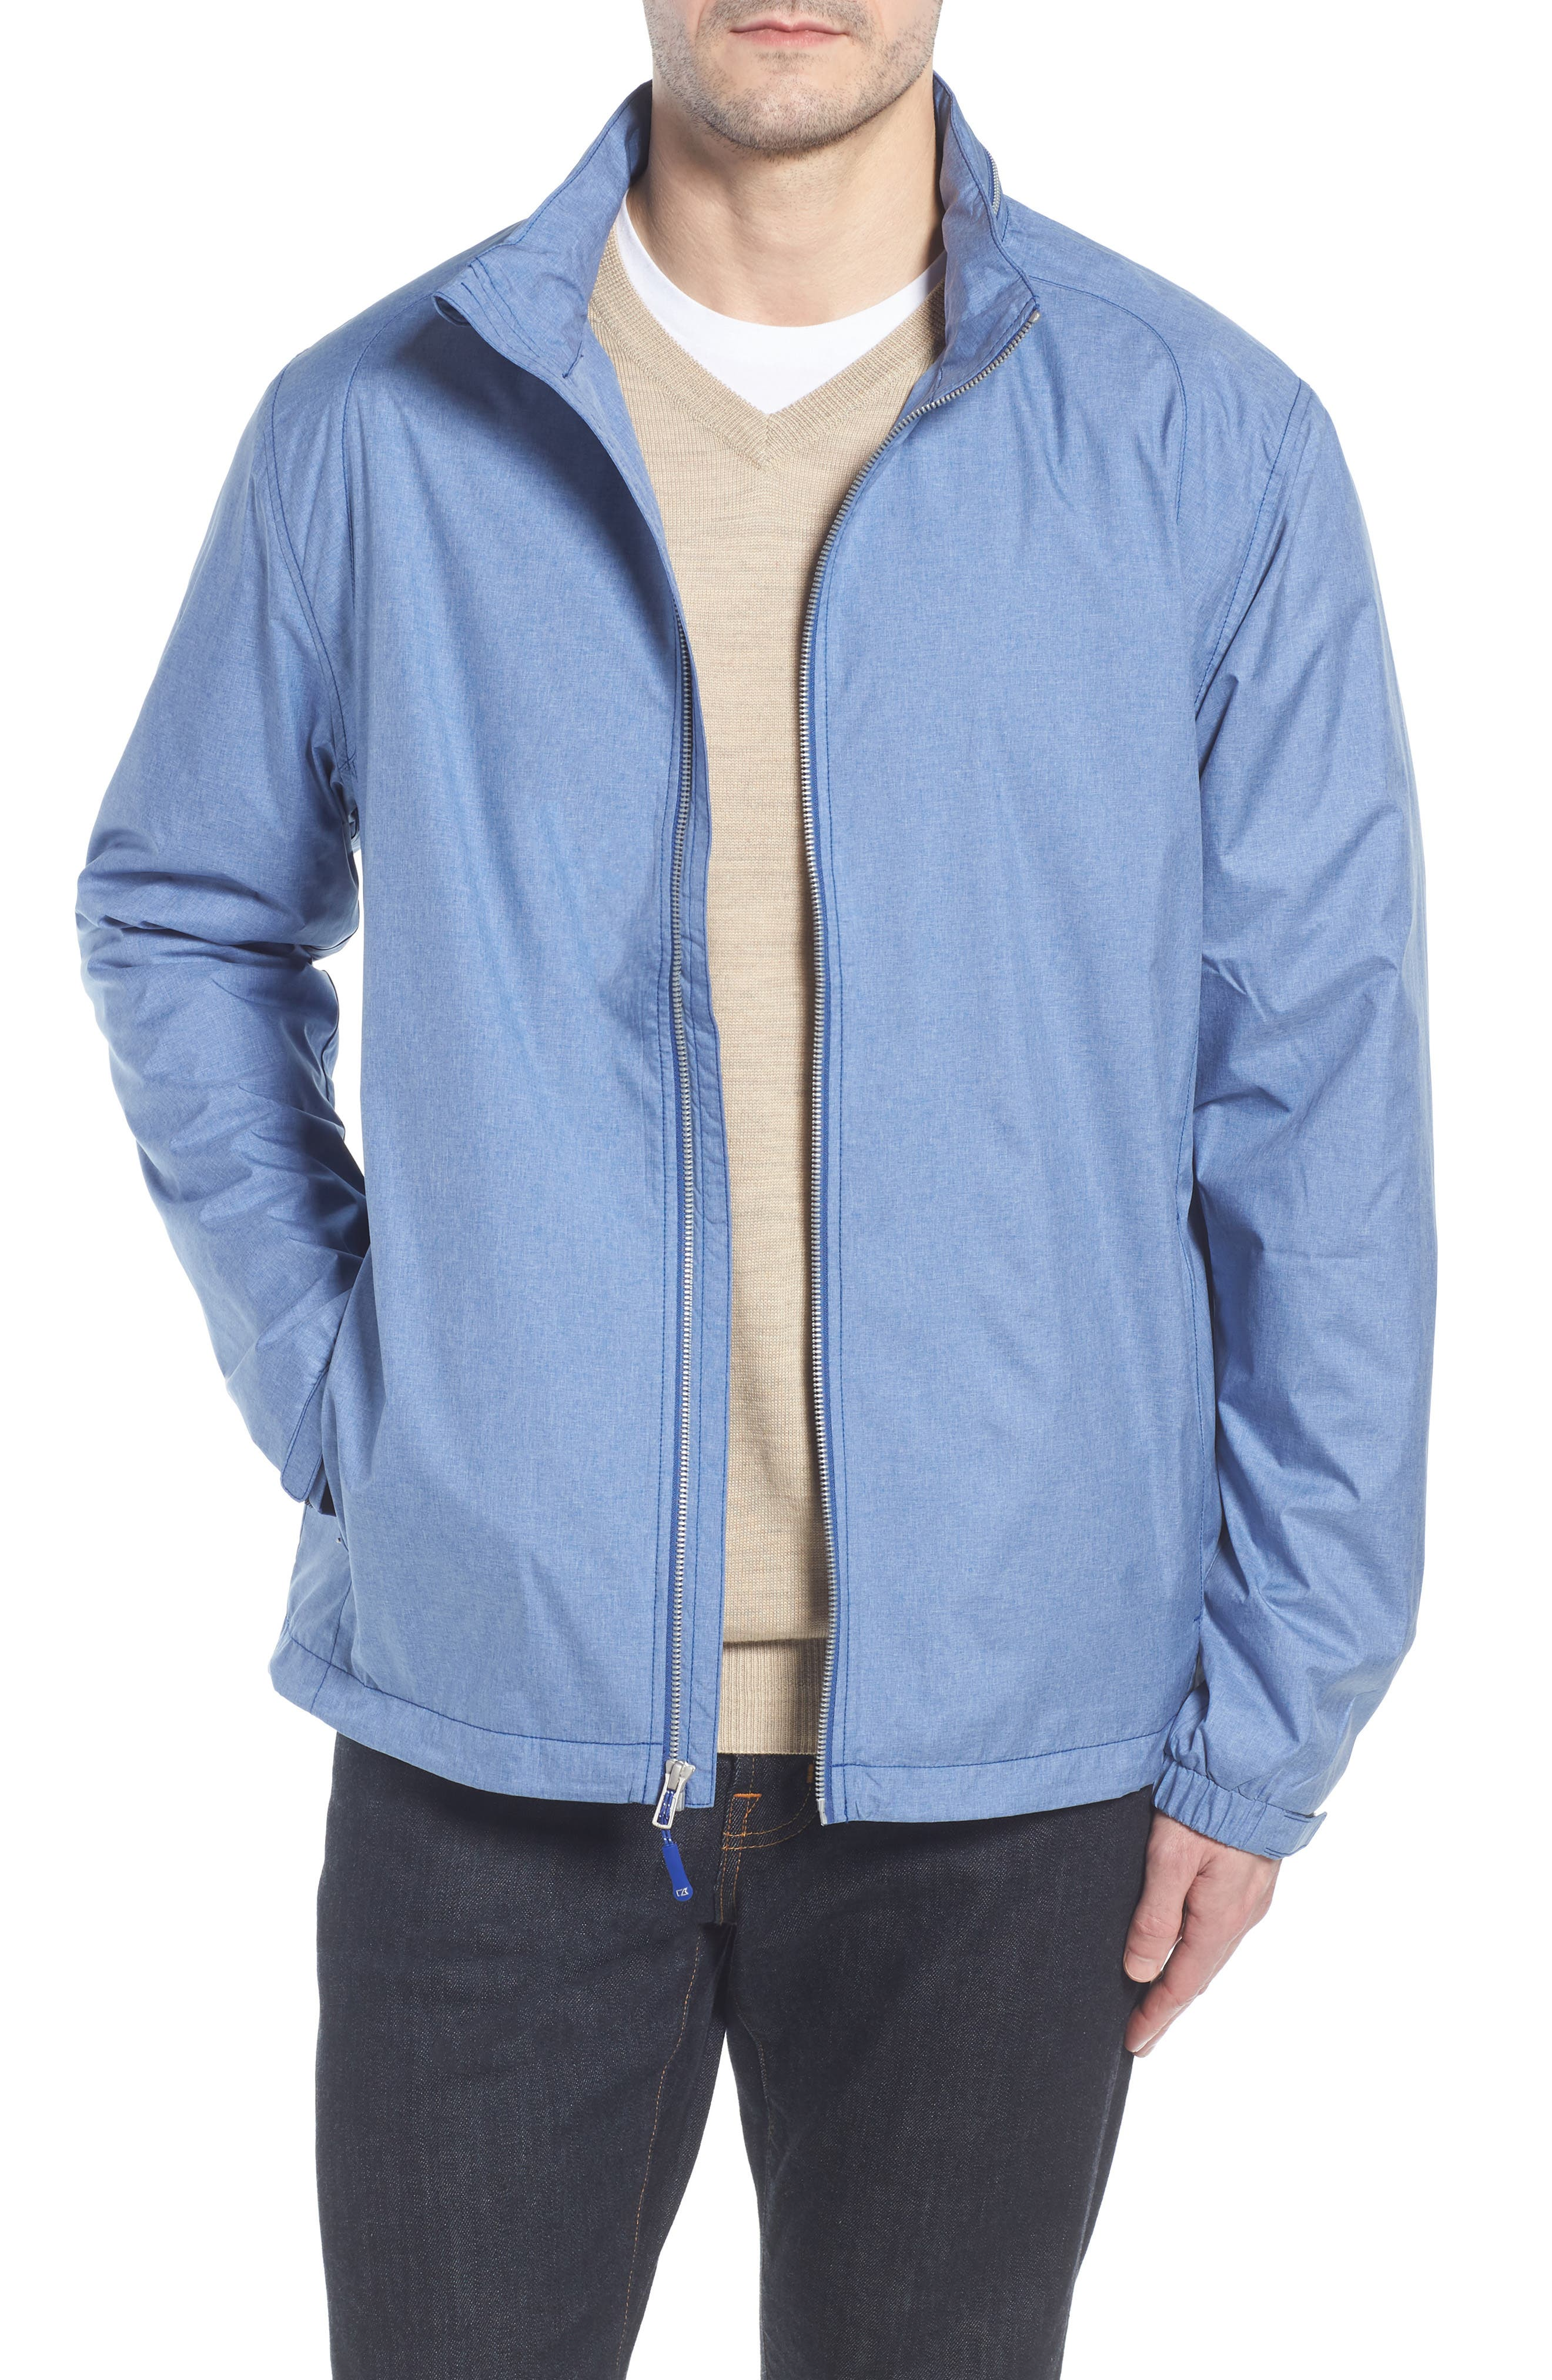 Panoramic Packable Jacket by Cutter & Buck